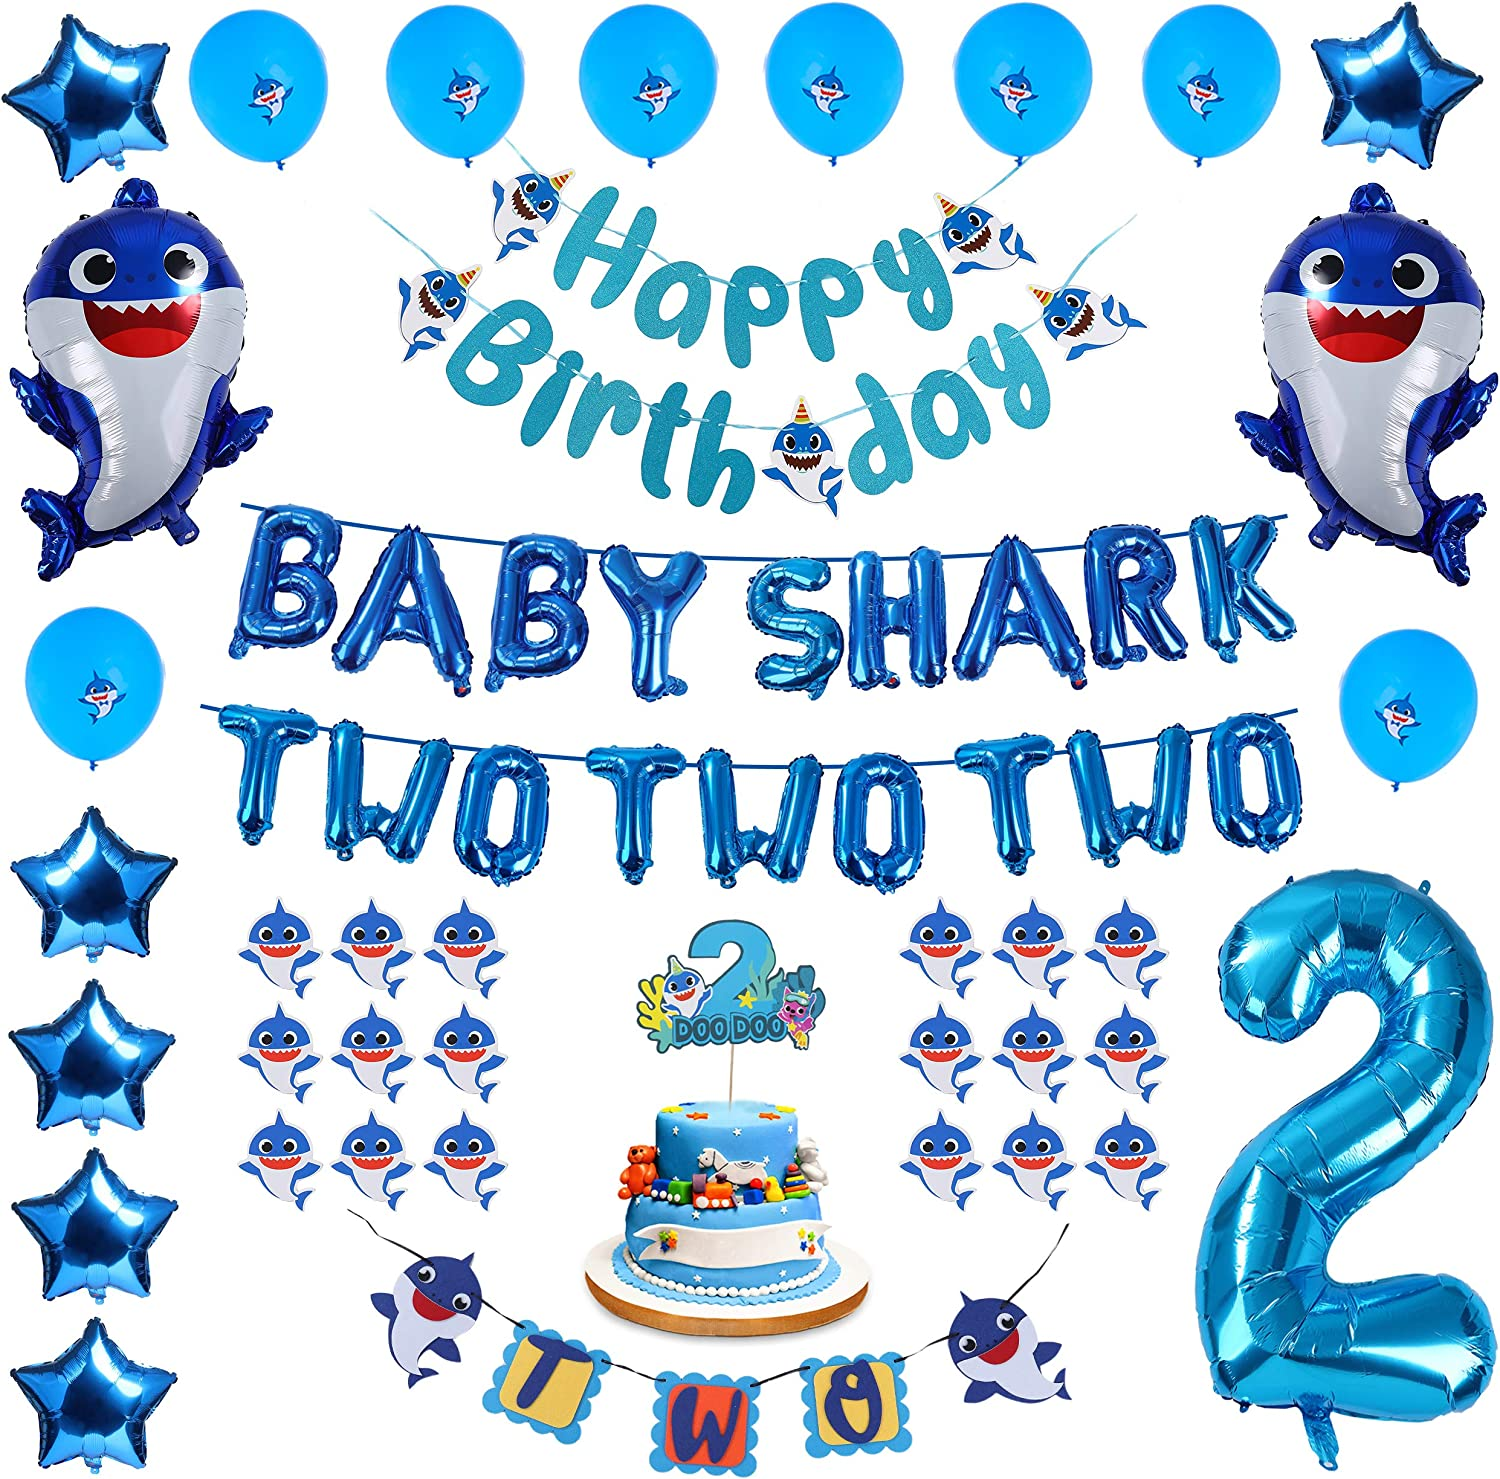 Baby Shark 2nd Birthday Decorations Boy - Blue Baby Shark TWO TWO TWO and Number 2 Foil Balloons 2 DOO DOO Cake Topper Happy Birthday and TWO Banner Cute Shark Latex Balloons Cupcake Toppers